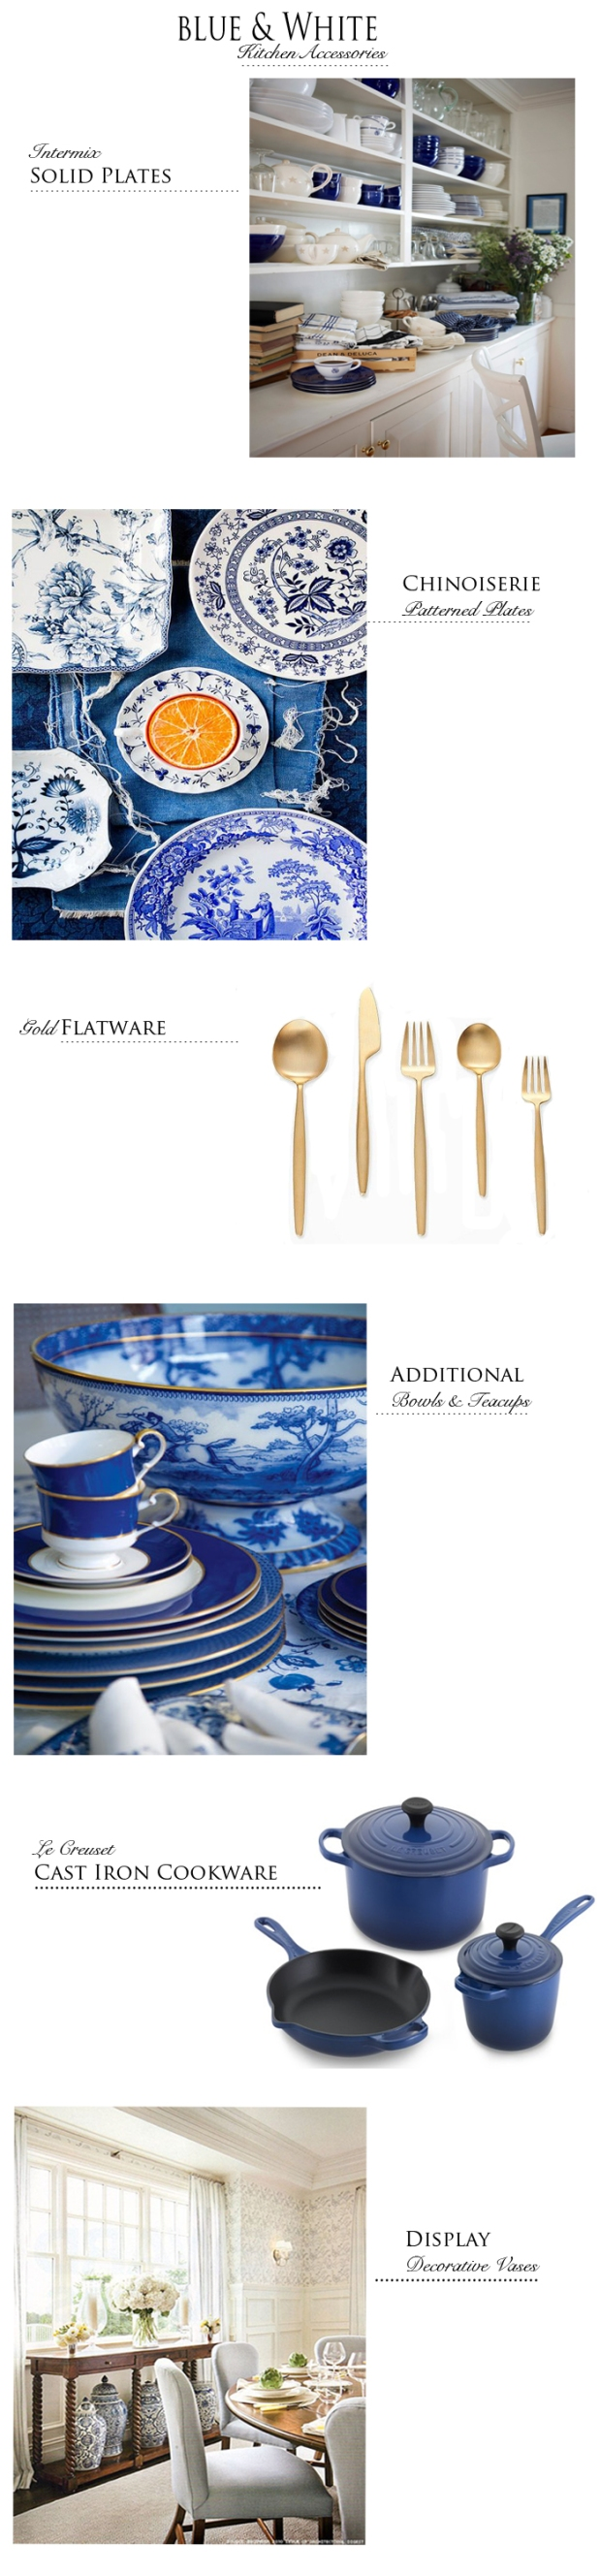 blue and white kitchen accessories sincerely kymberly